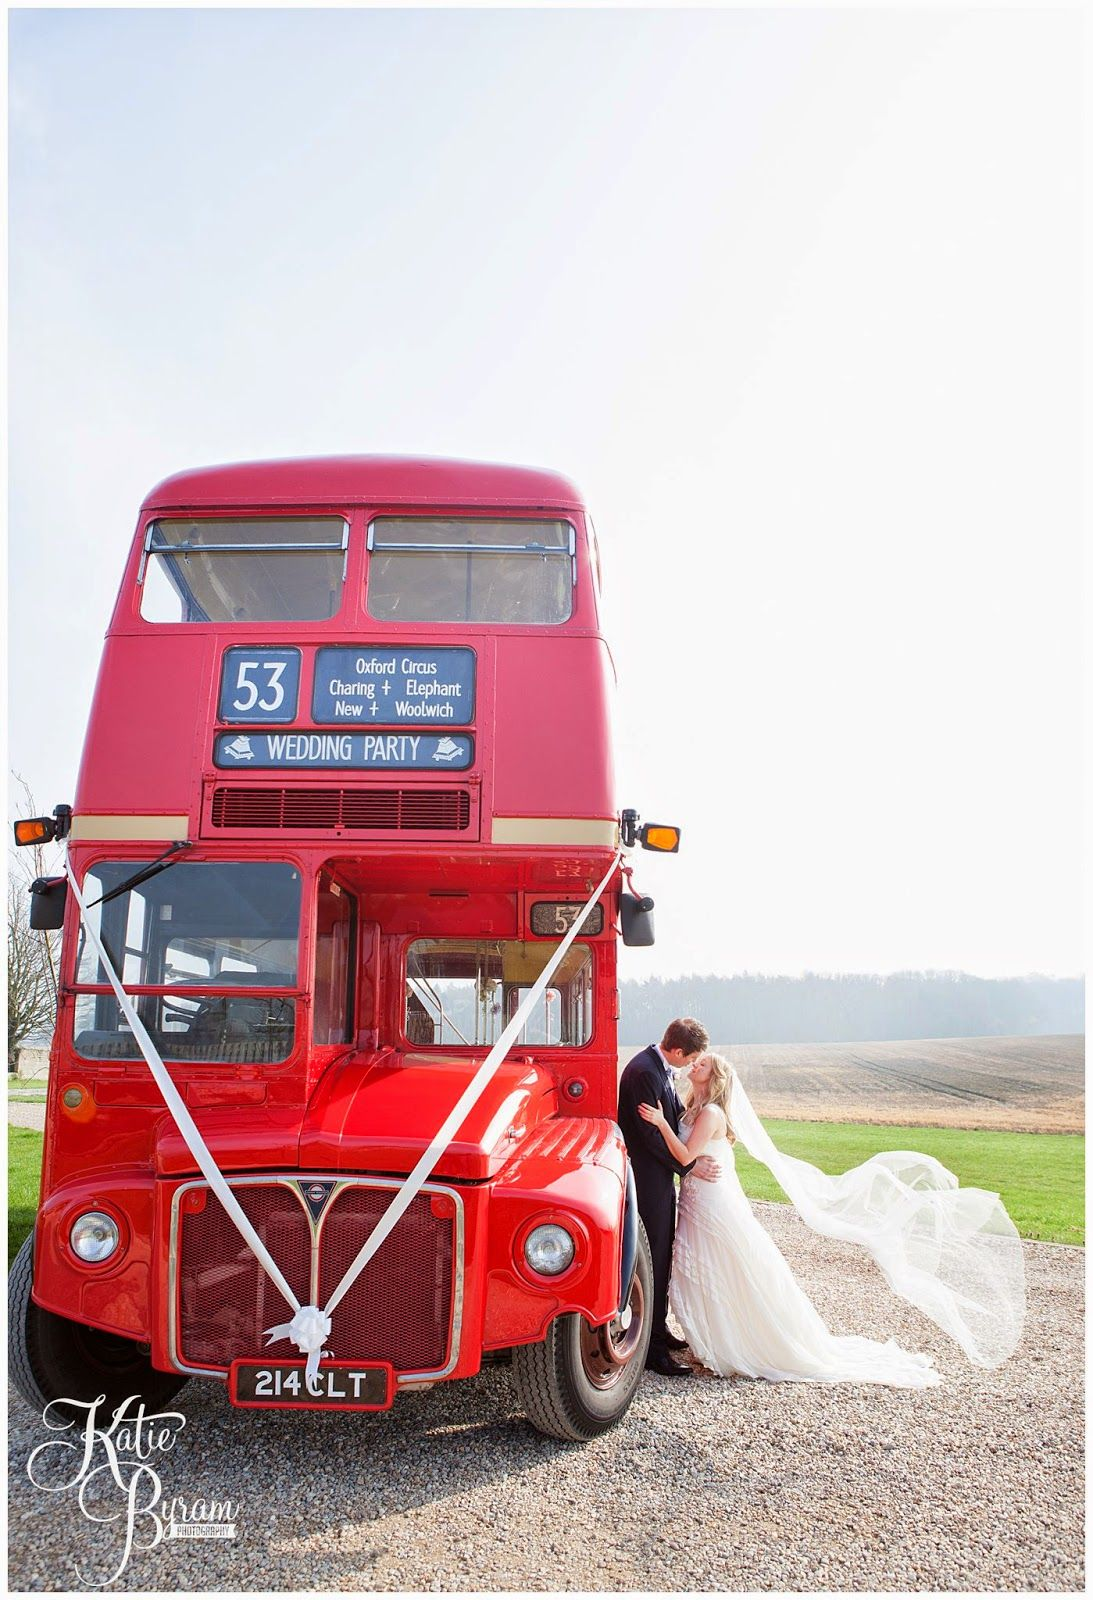 Vintage Wedding Bus Yorkshire Heritage Companypriory Cottages Priory